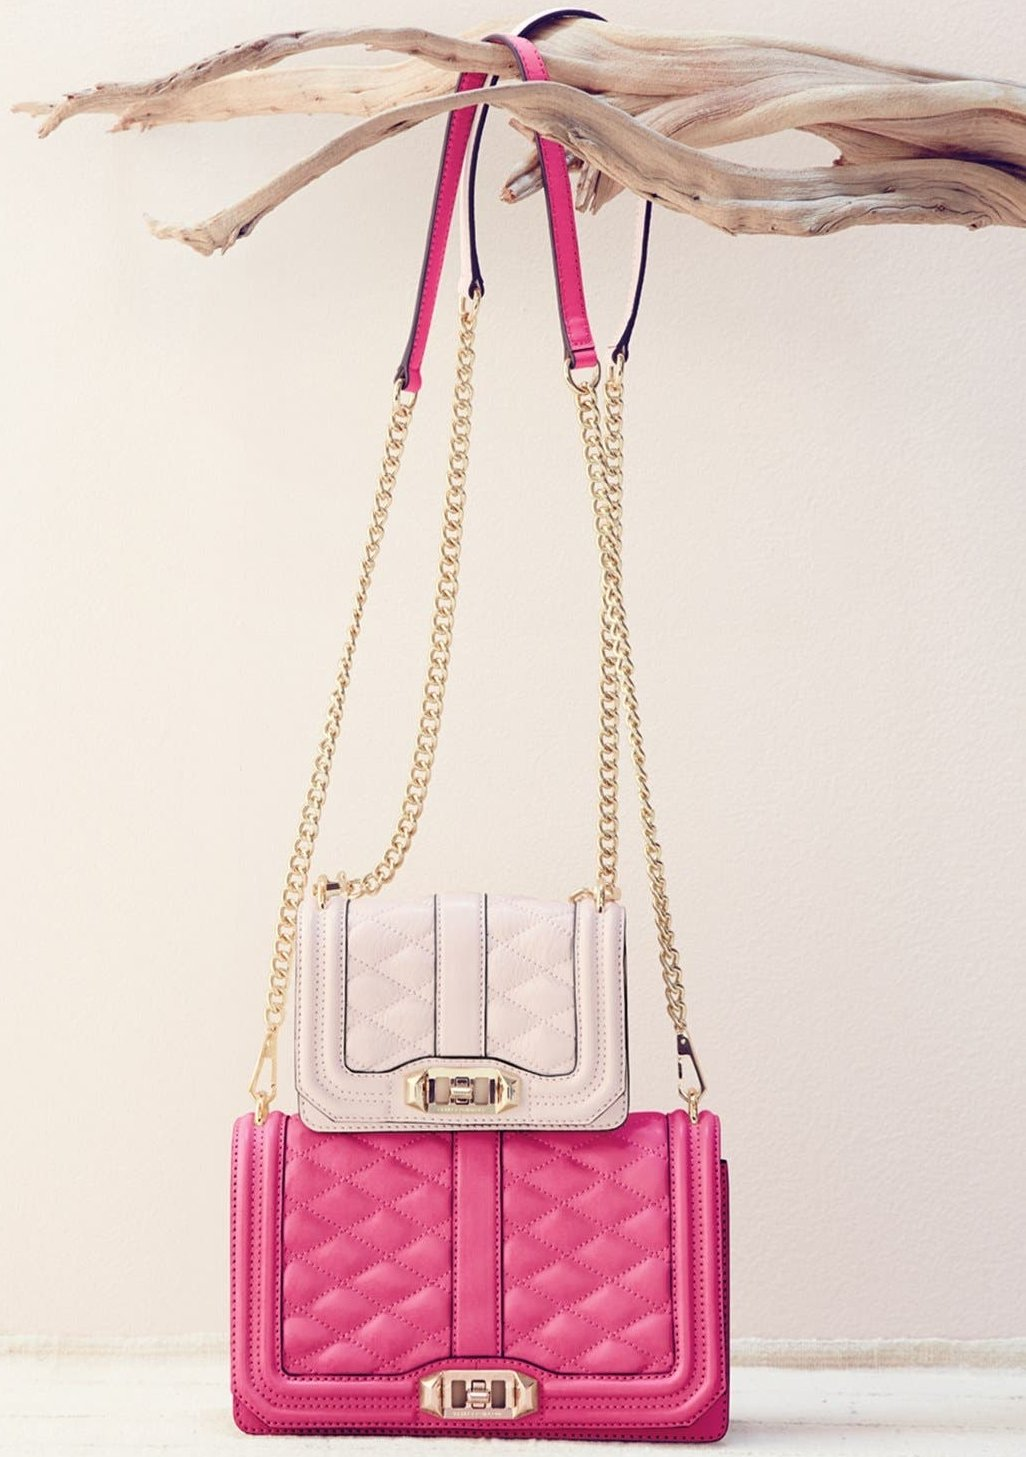 The petite version of the Love crossbody features turn-lock hardware and a chain strap